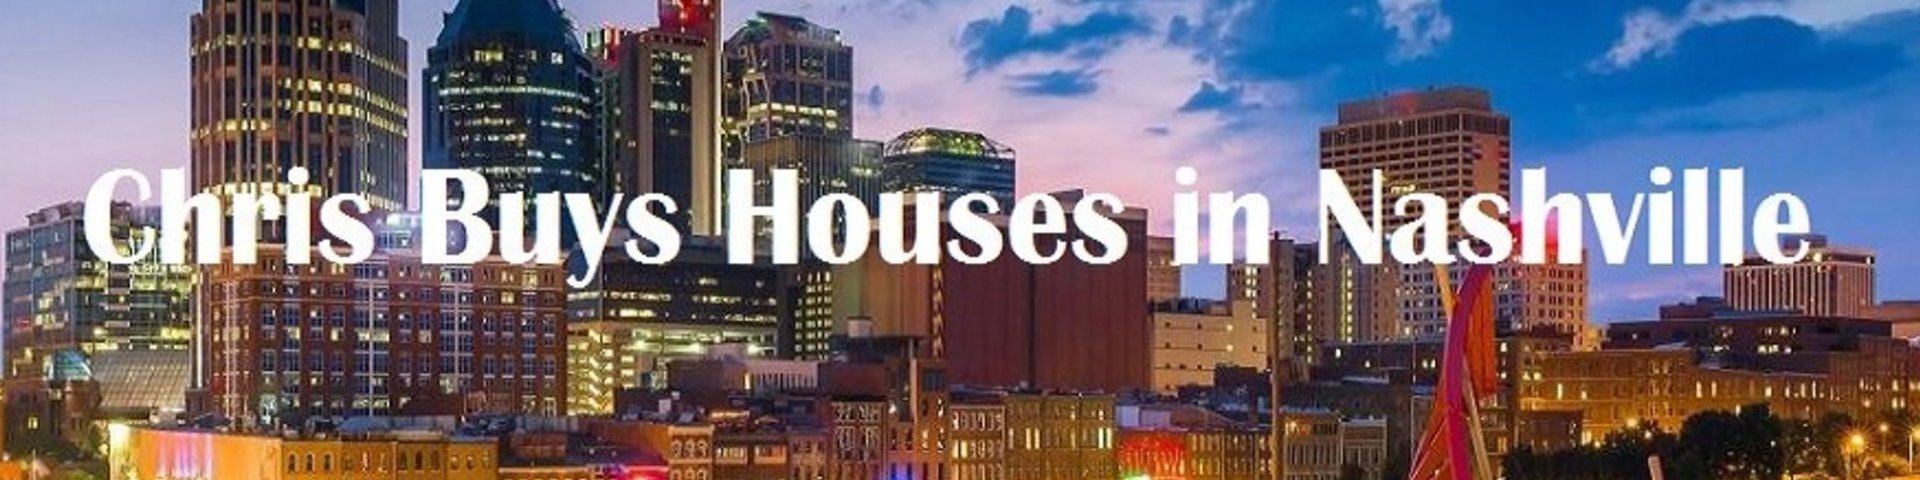 Chris Buys Houses in Nashville